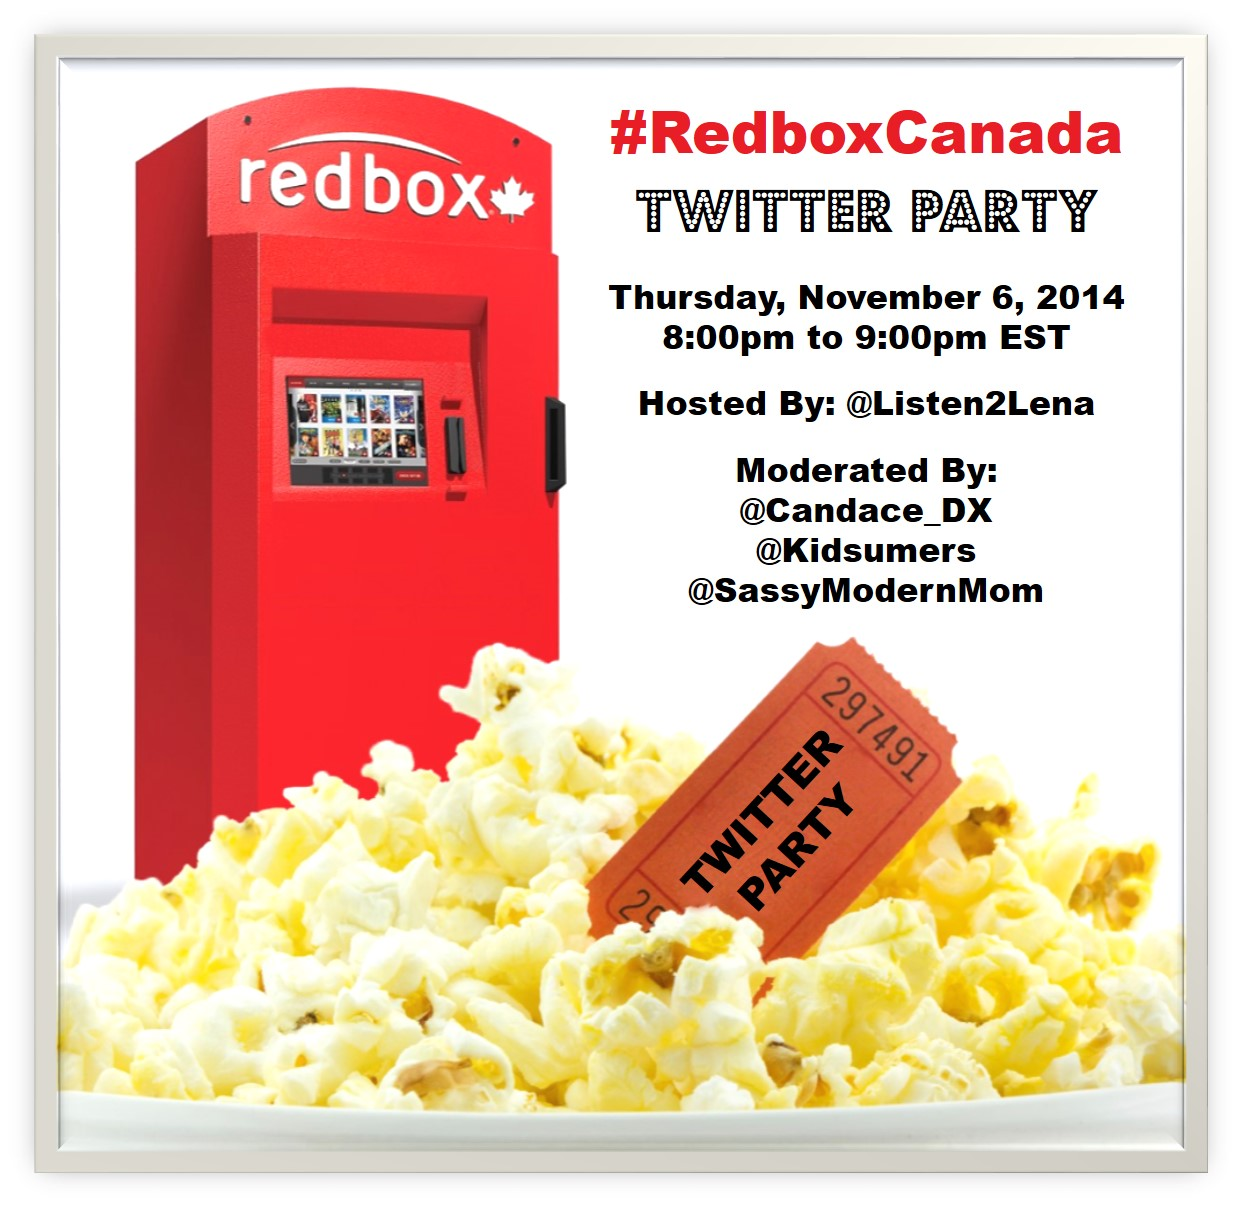 Join the #RedboxCanada Twitter Party Nov. 6th 8pm EST